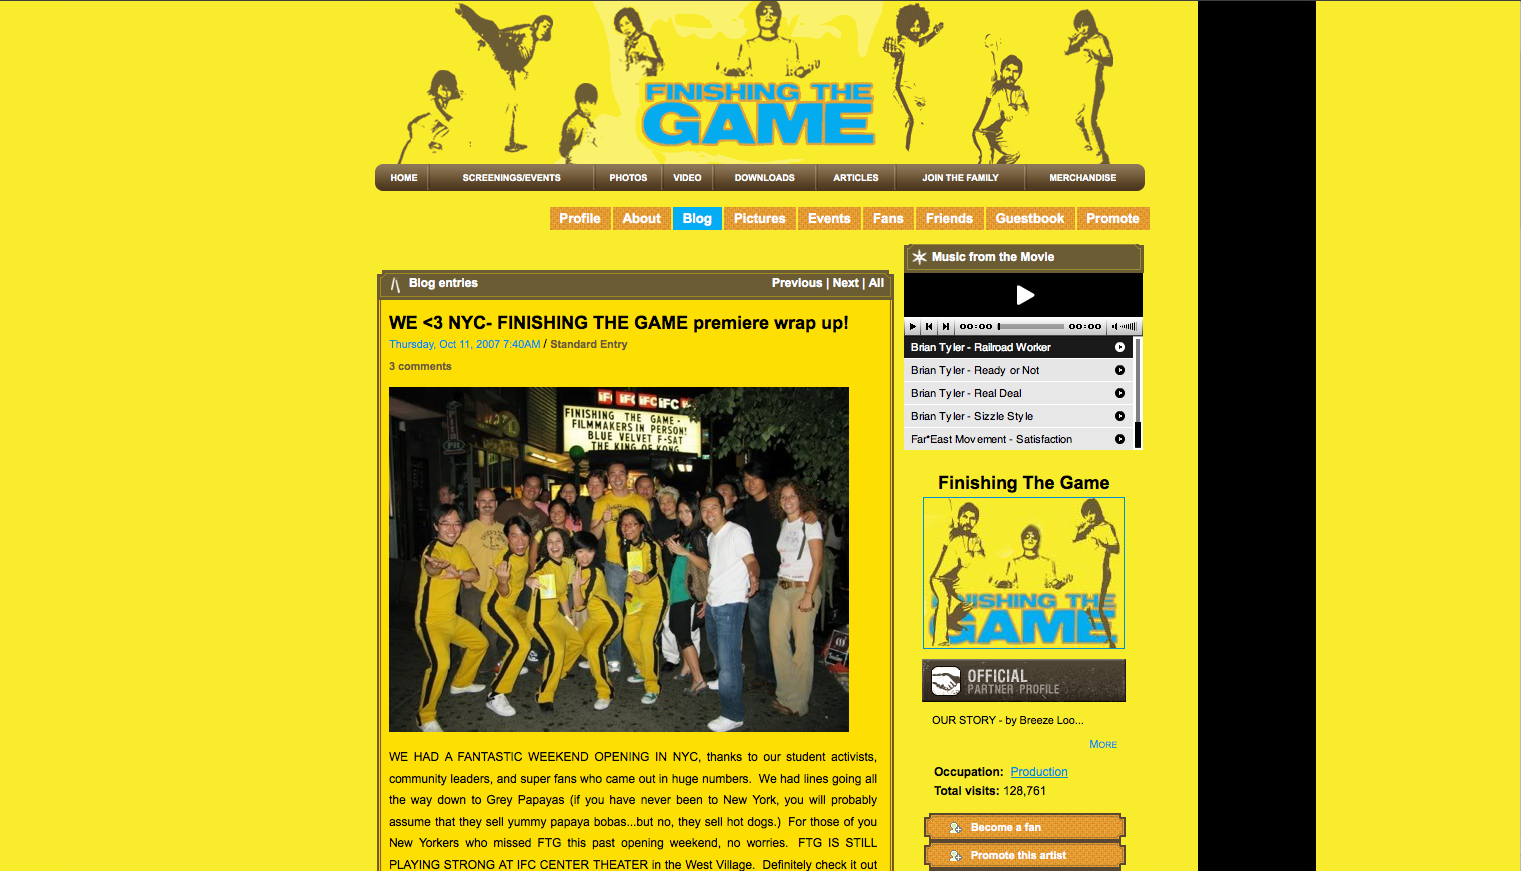 Finishing the Game's blog